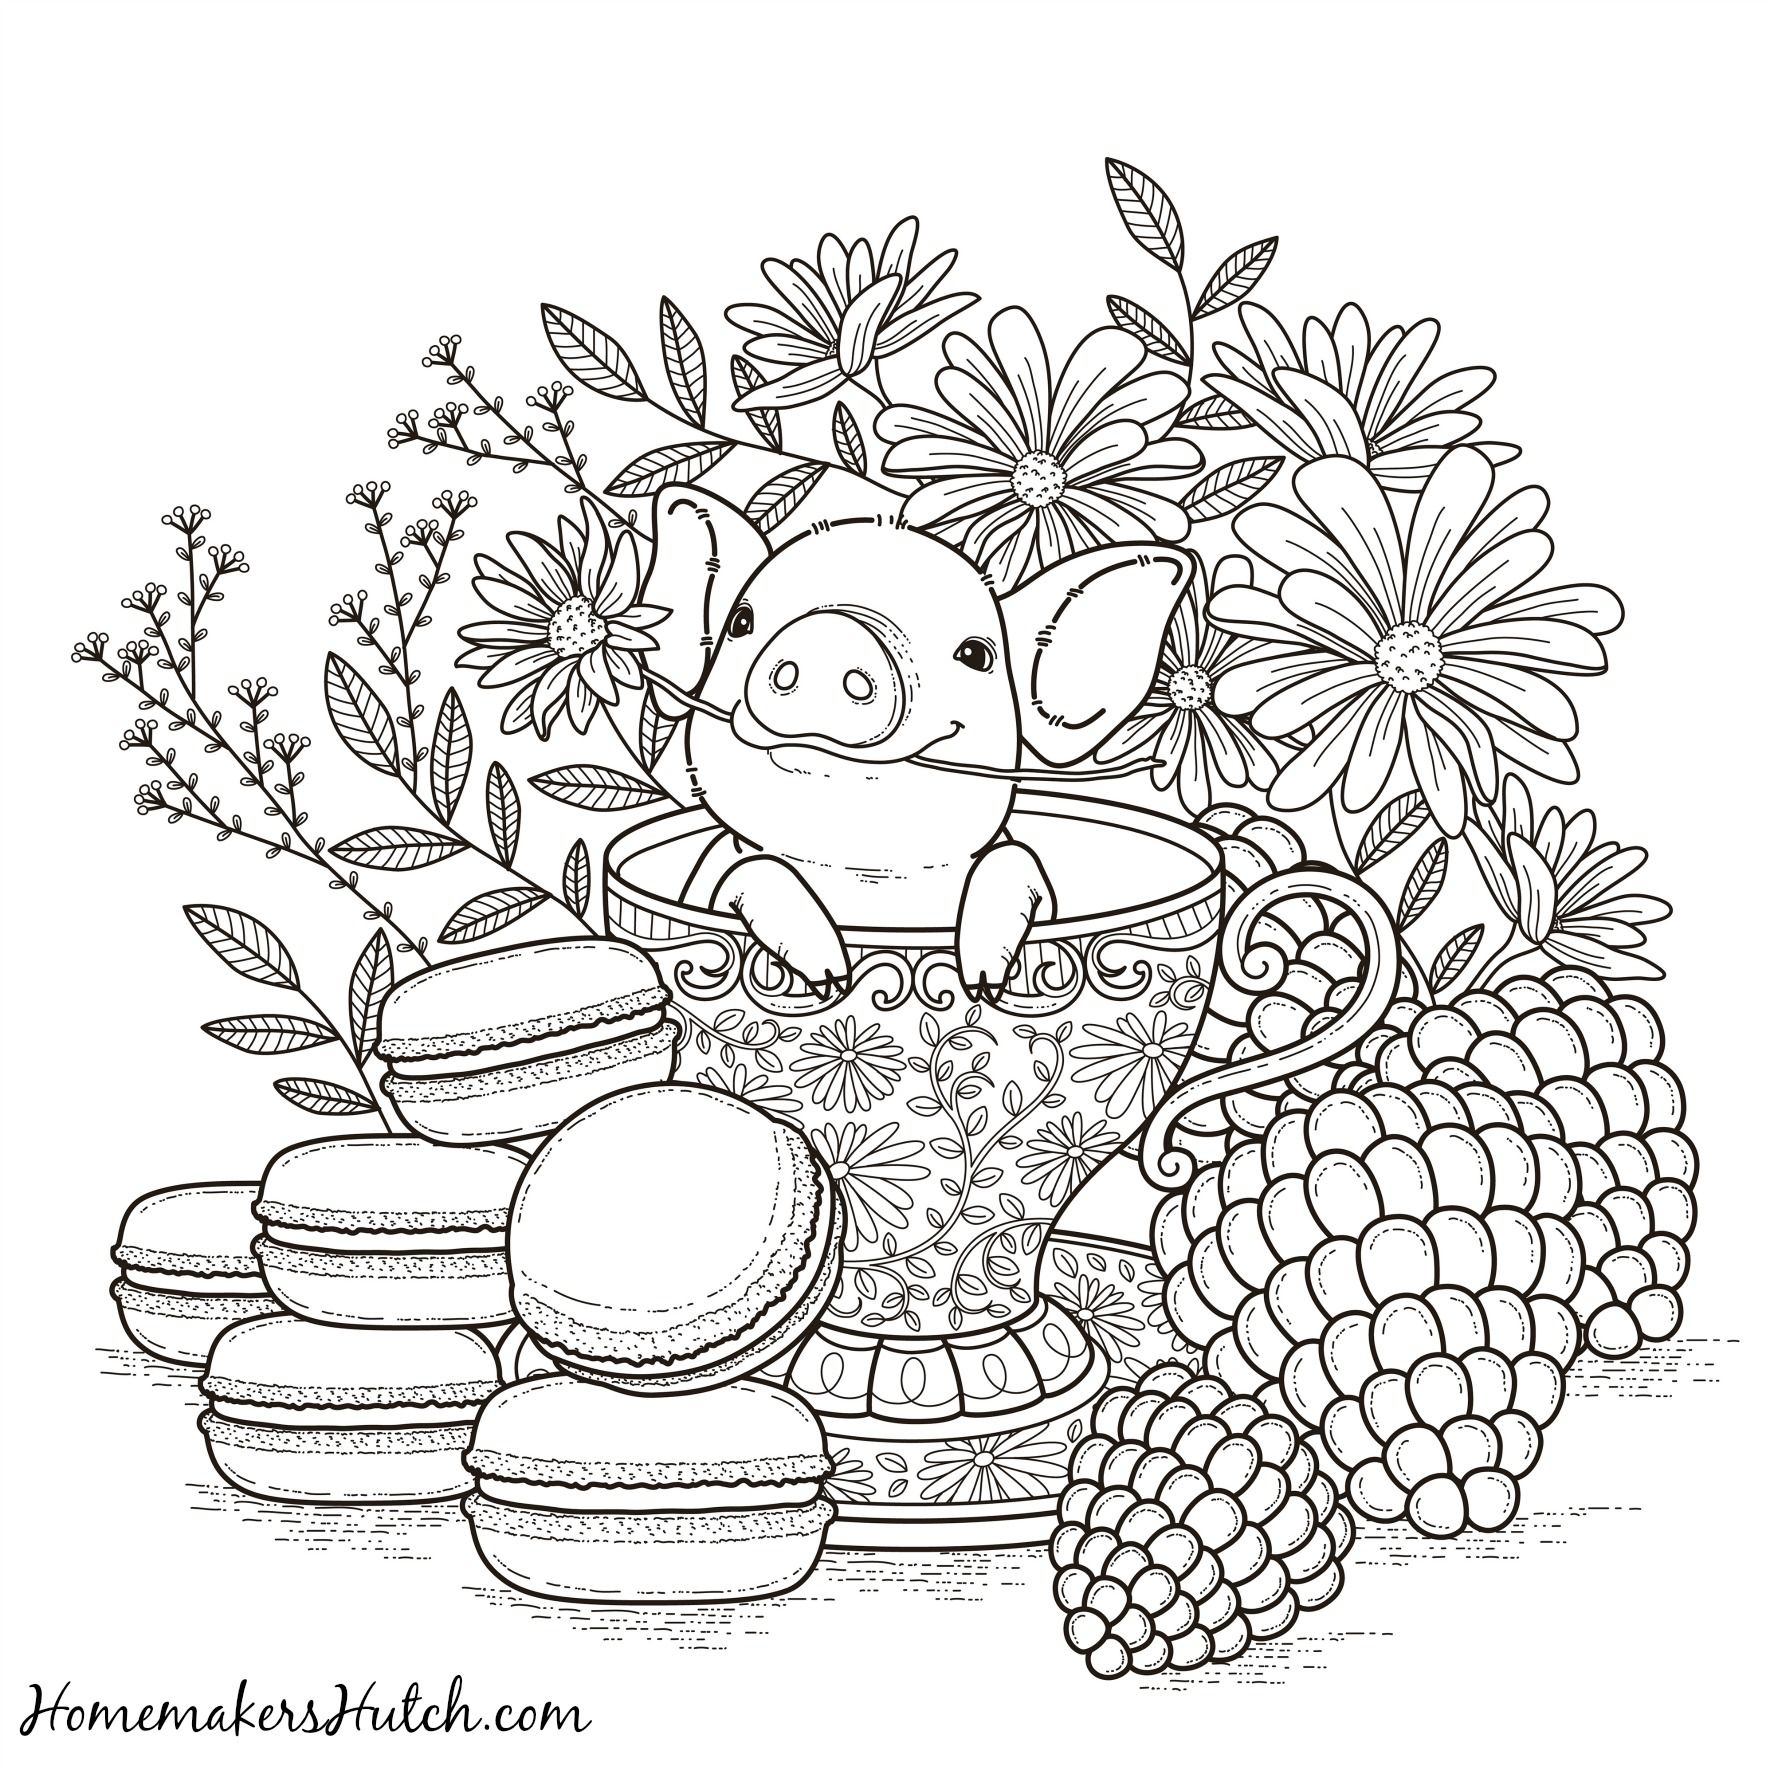 Pig In A Tea Cup - Adult Coloring Page | Coloring | Adult Coloring - Free Printable Tea Cup Coloring Pages